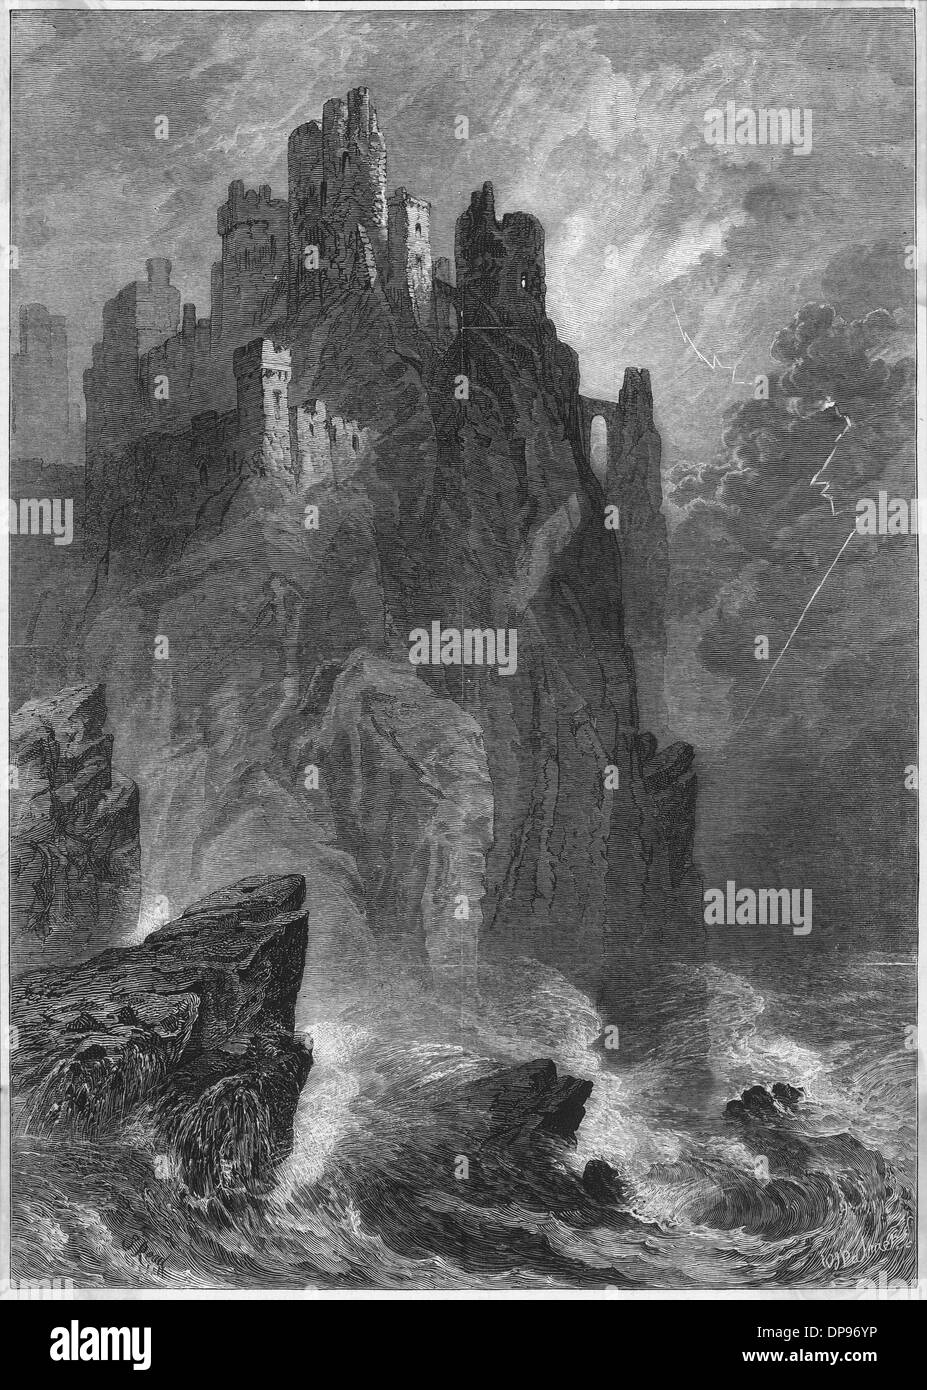 RUINED CASTLE - Stock Image